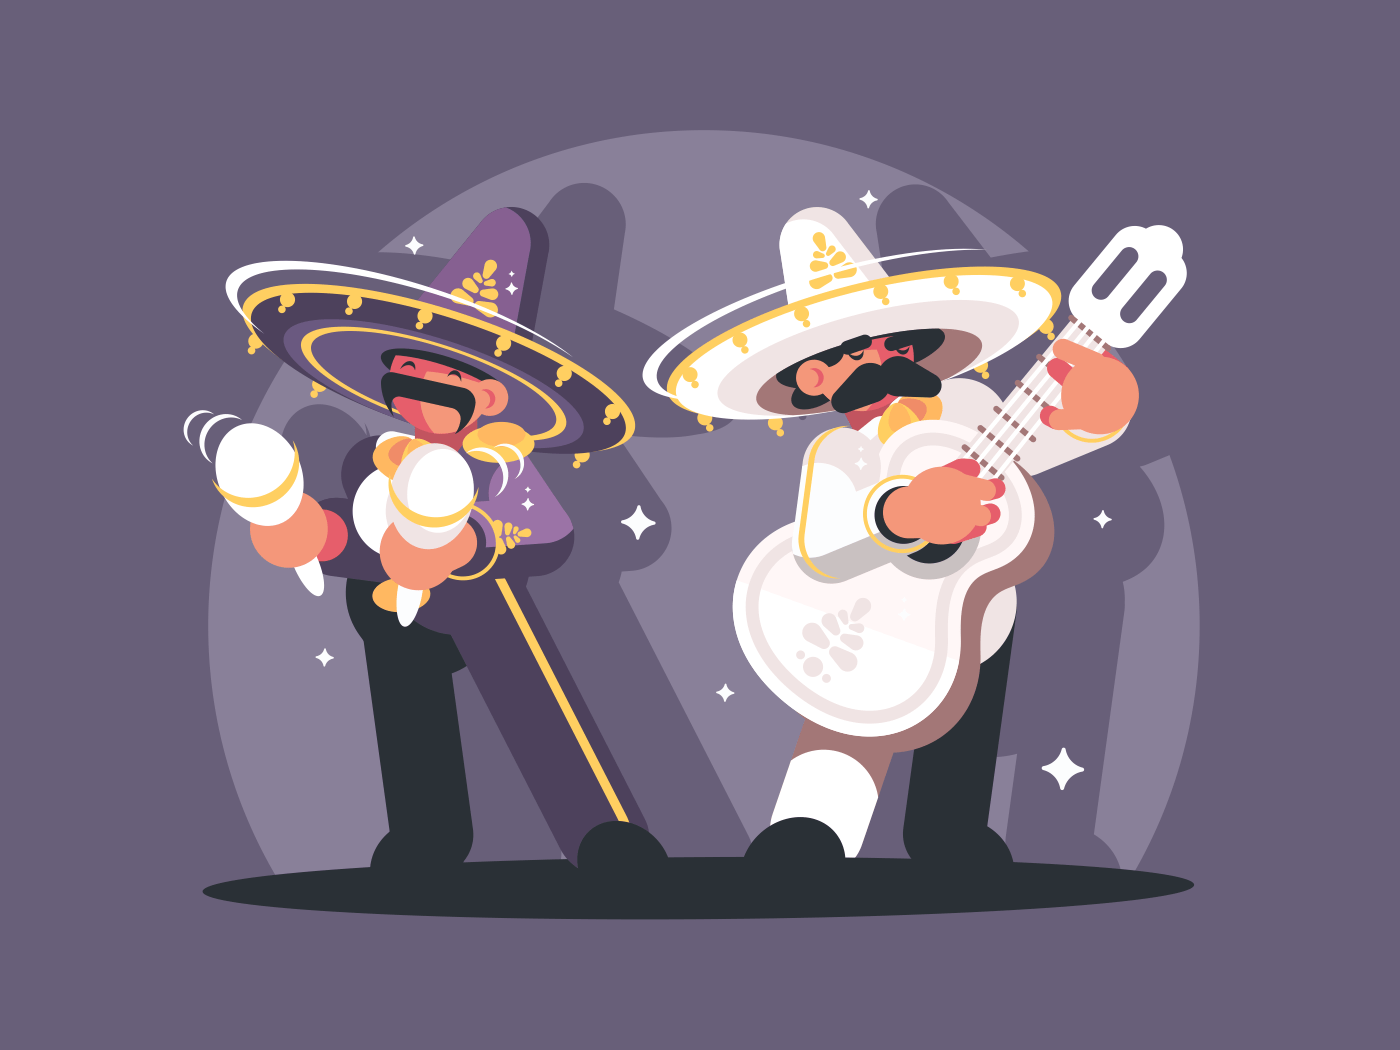 Mexican musicians in sombrero play guitar and maracas. Vector illustration